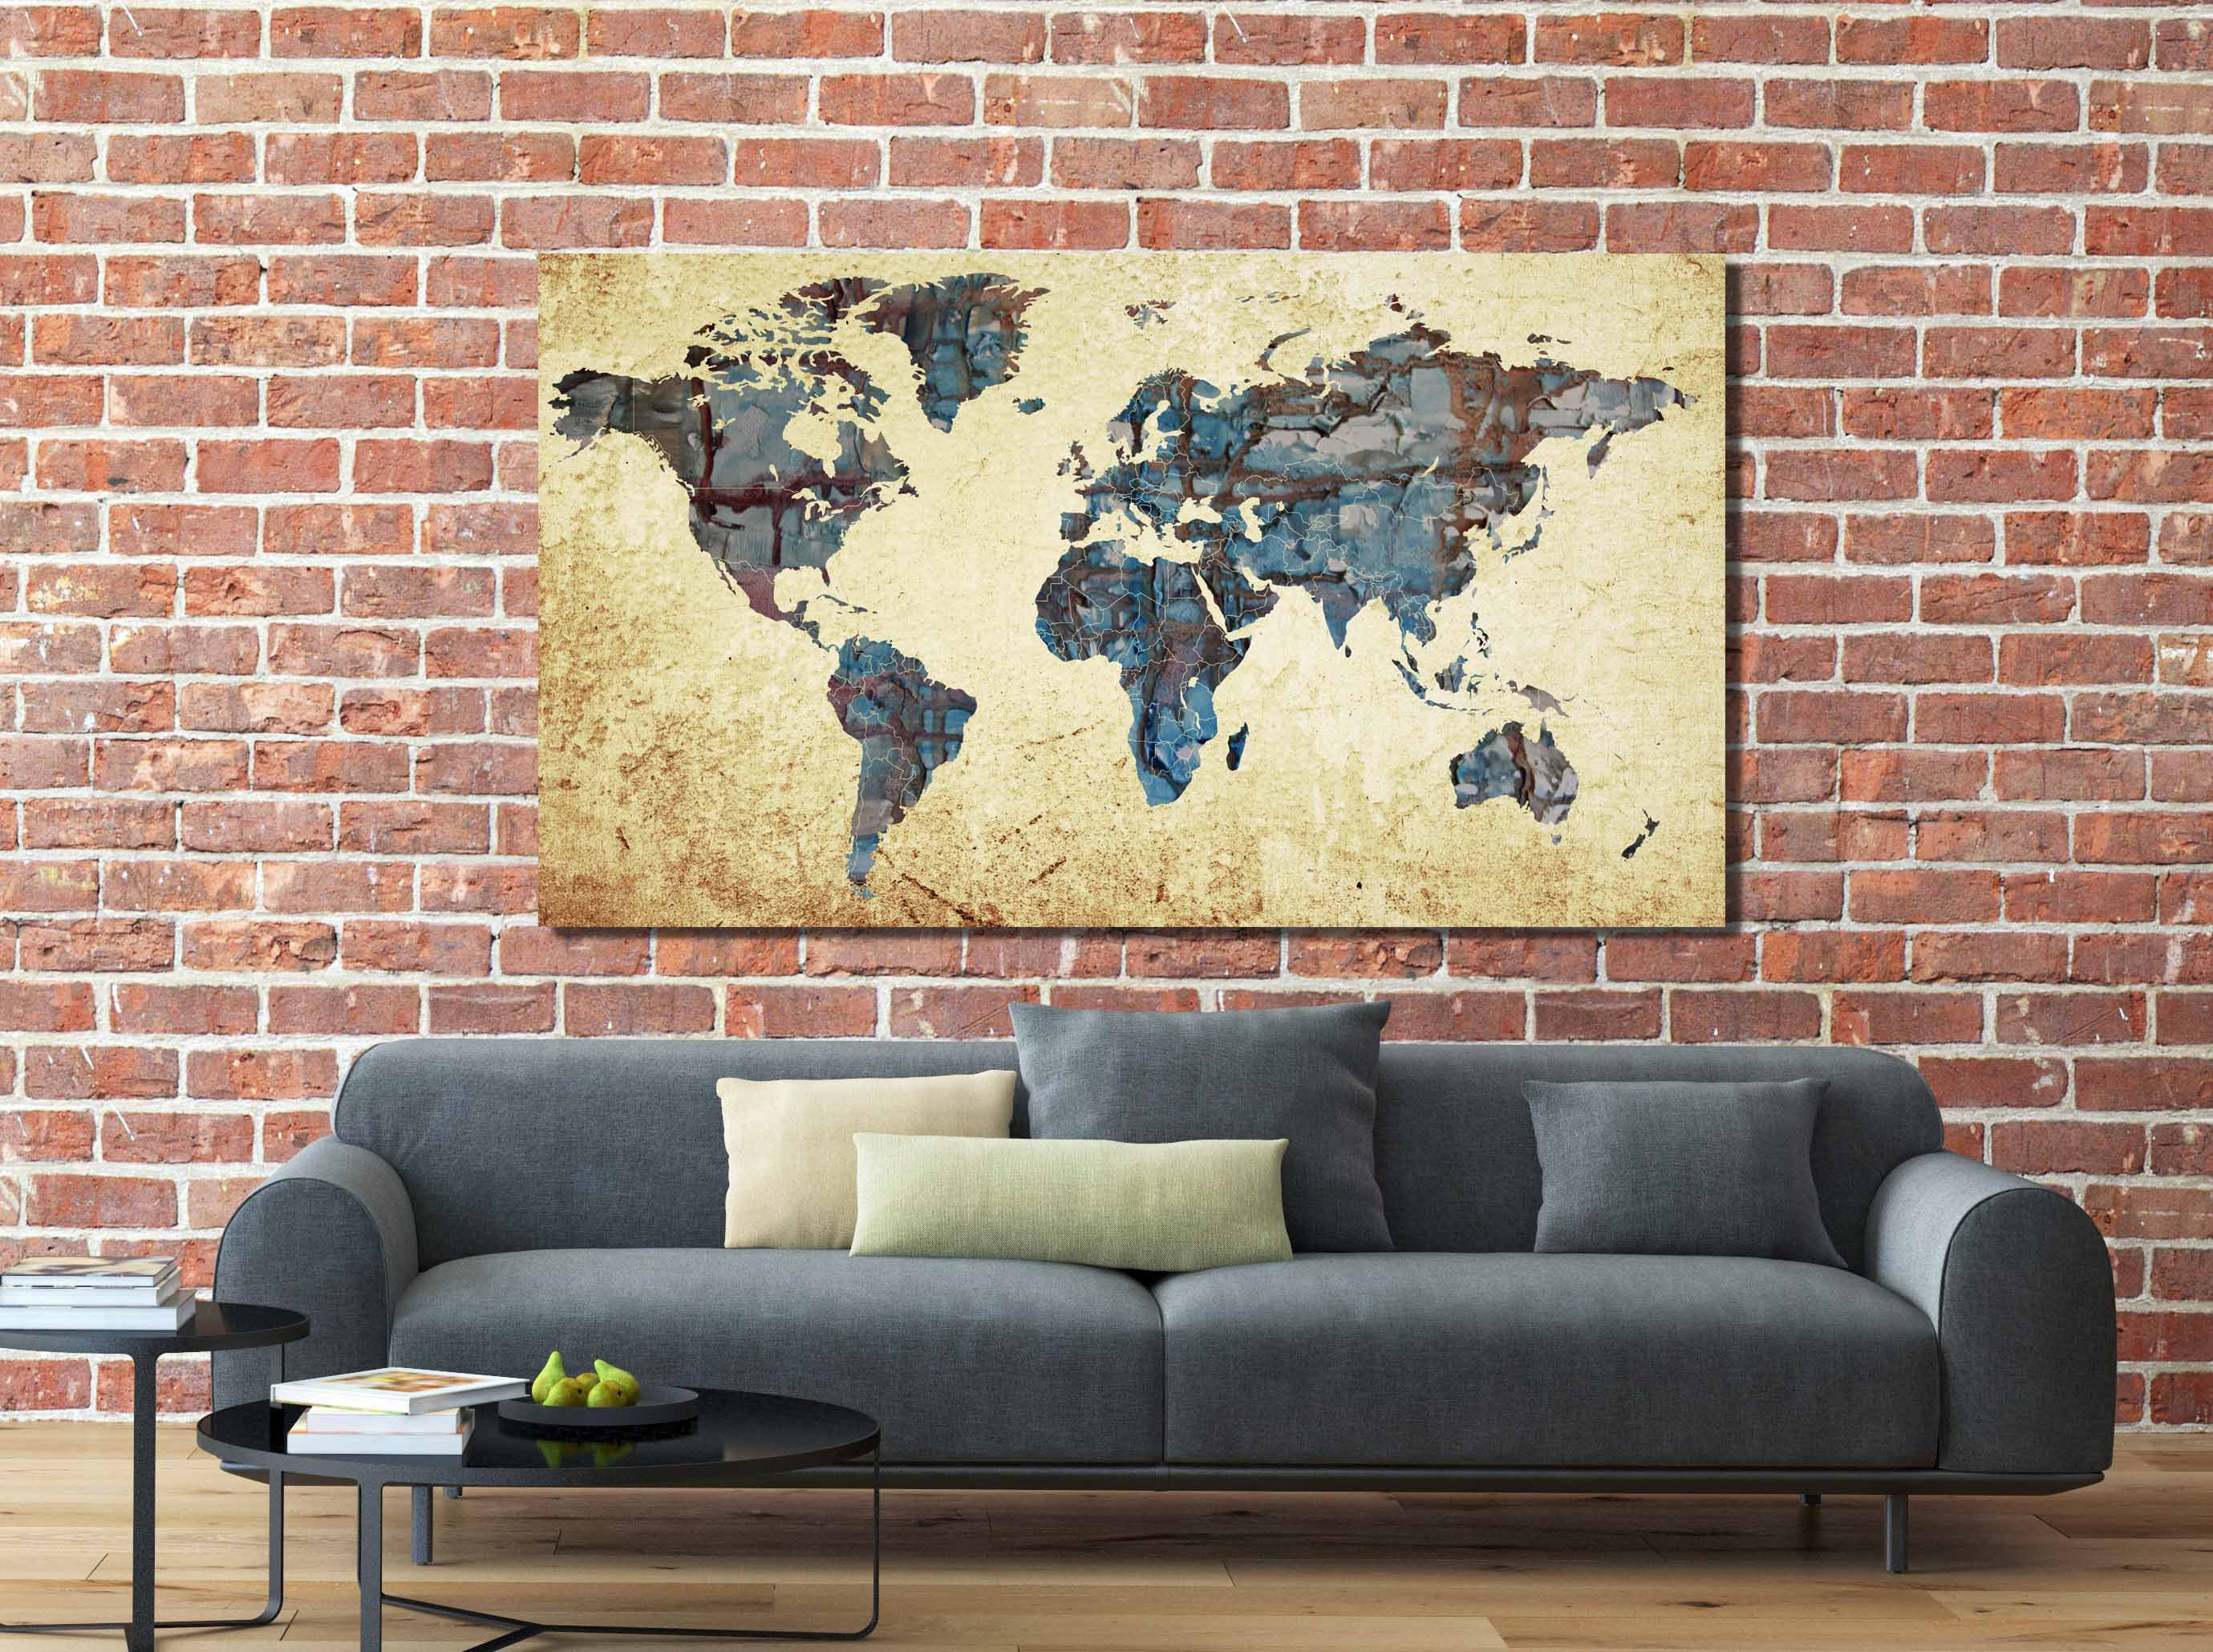 Decorative World Map Poster.Large World Map World Map Abstract Map Wall Art World Map Painting